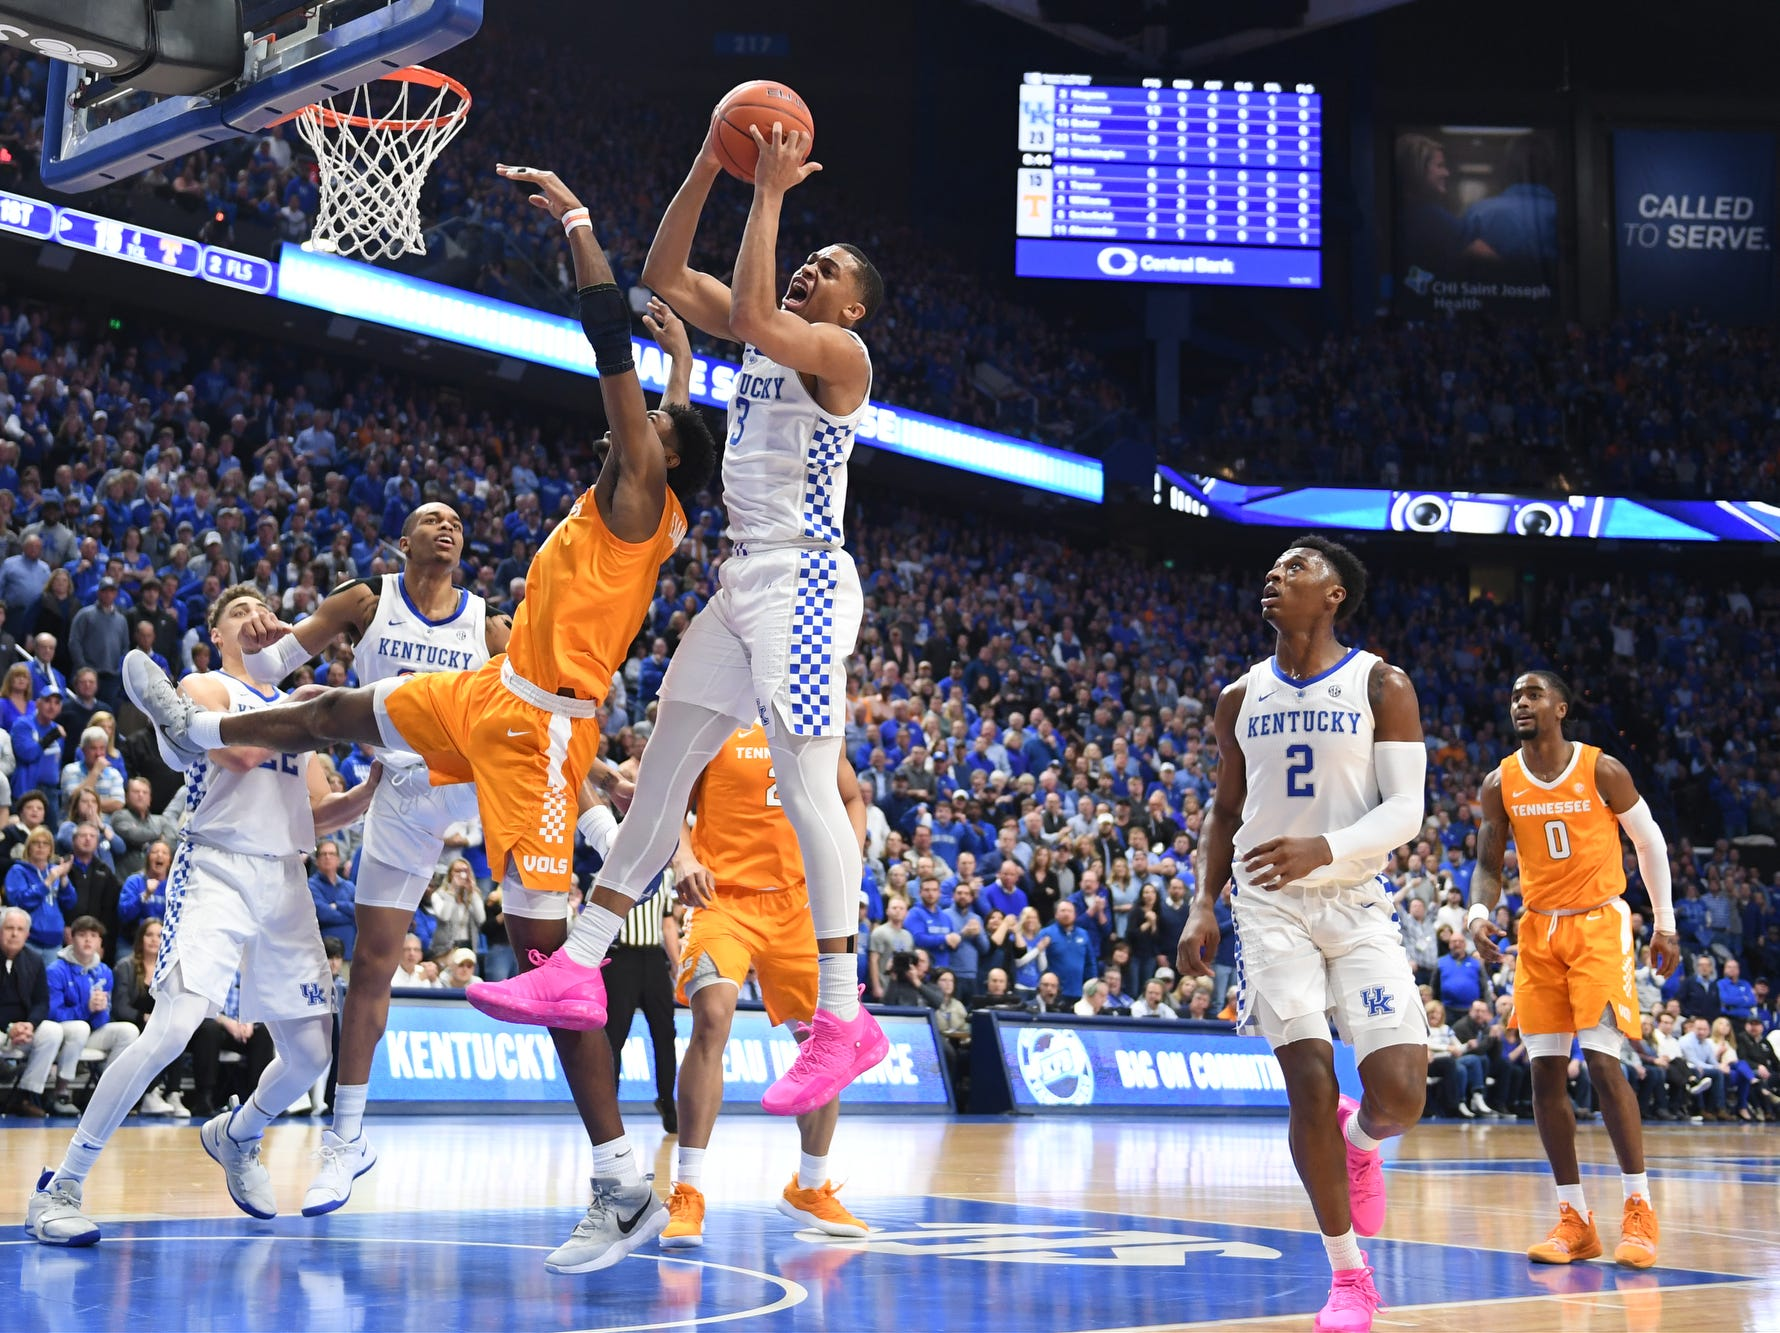 UK G Keldon Johnson grabs a rebound during the University of Kentucky mens basketball game against Tennessee at Rupp Arena in Lexington, Kentucky on Saturday, February 16, 2019.